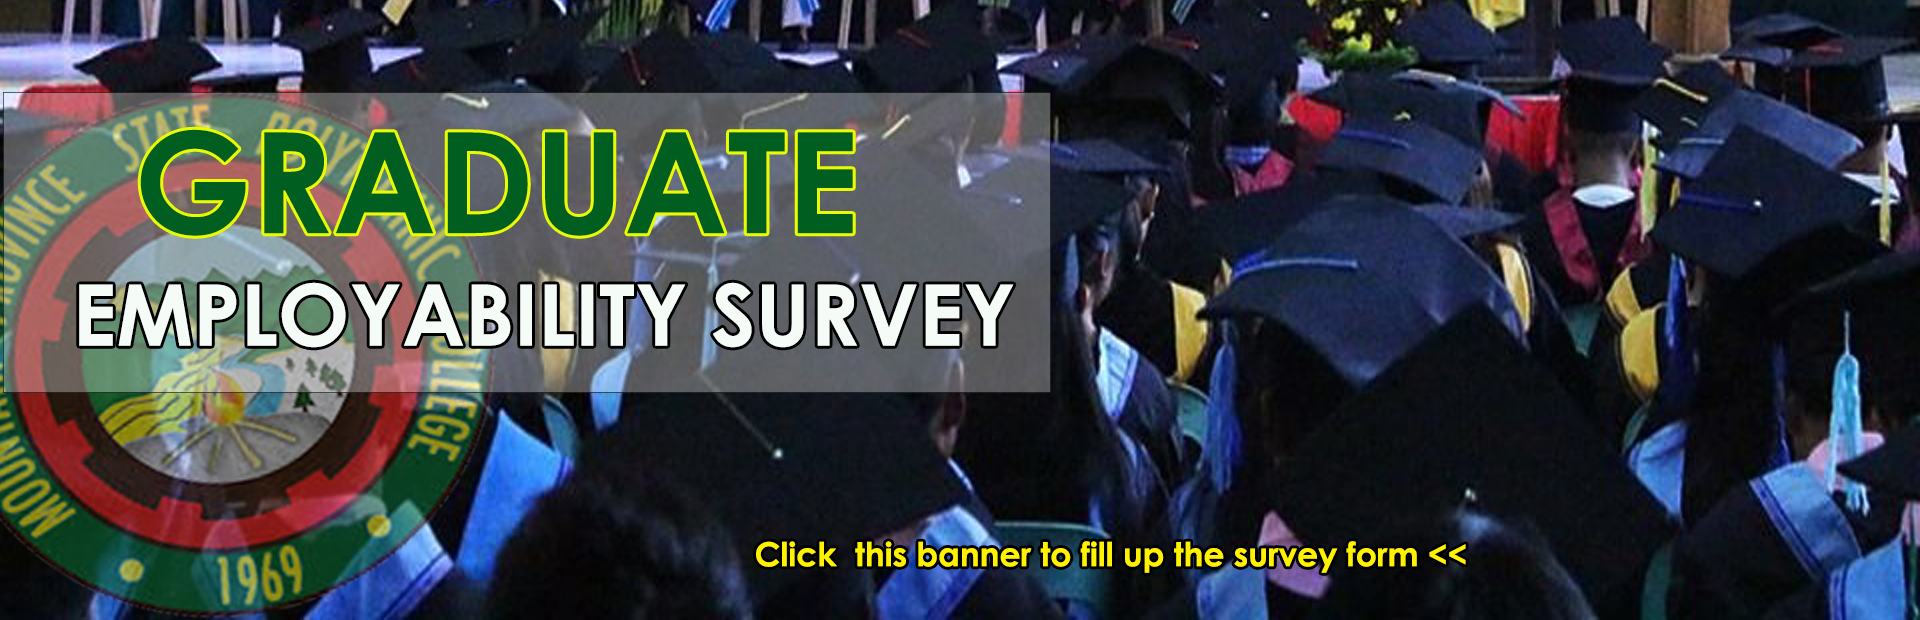 GRADUATE EMPLOYABILITY SURVEY